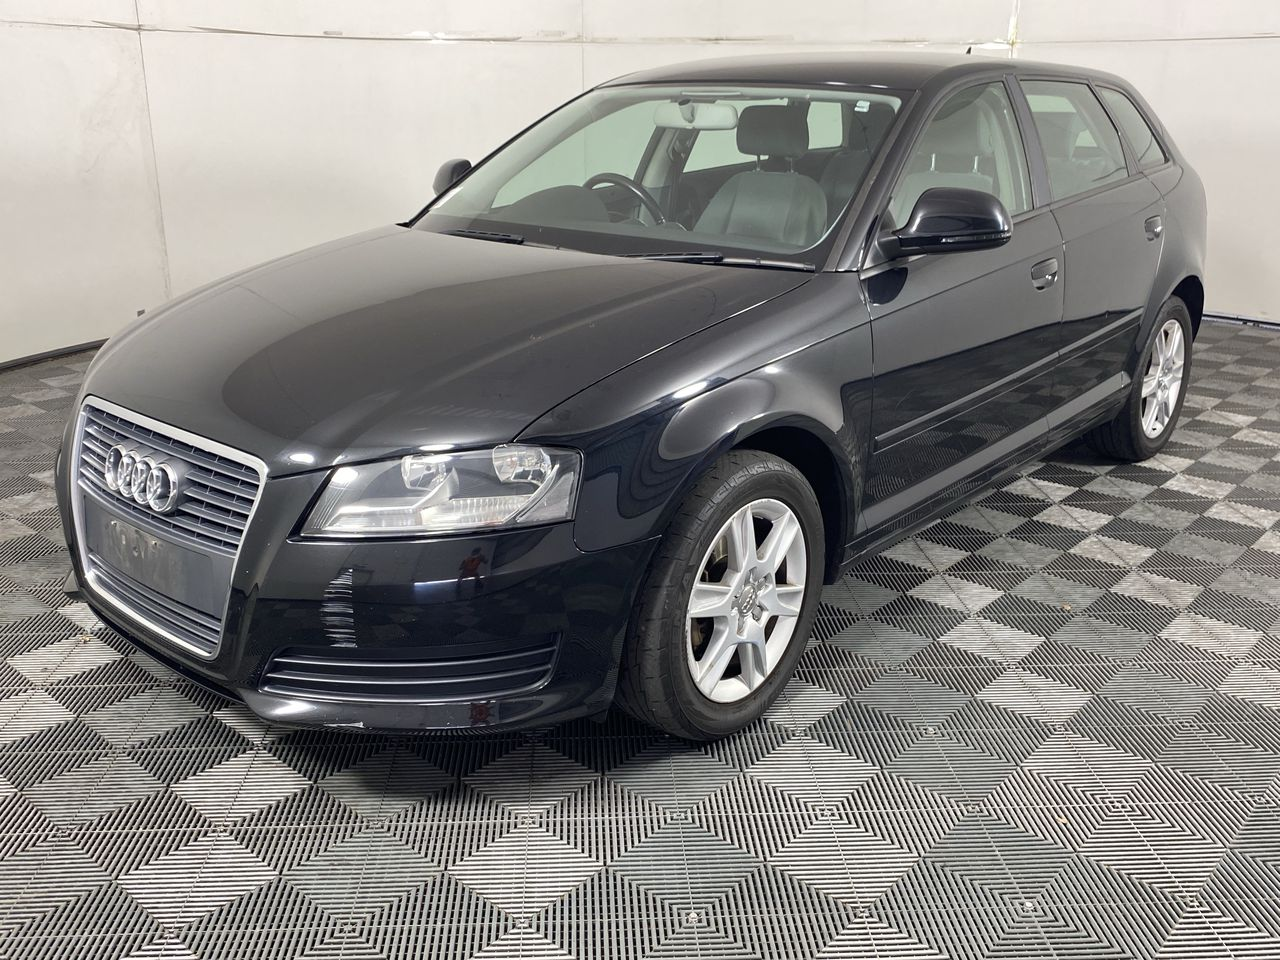 2010 Audi A3 Sportback 1.4 TFSI Attraction 8P Automatic Hatchback